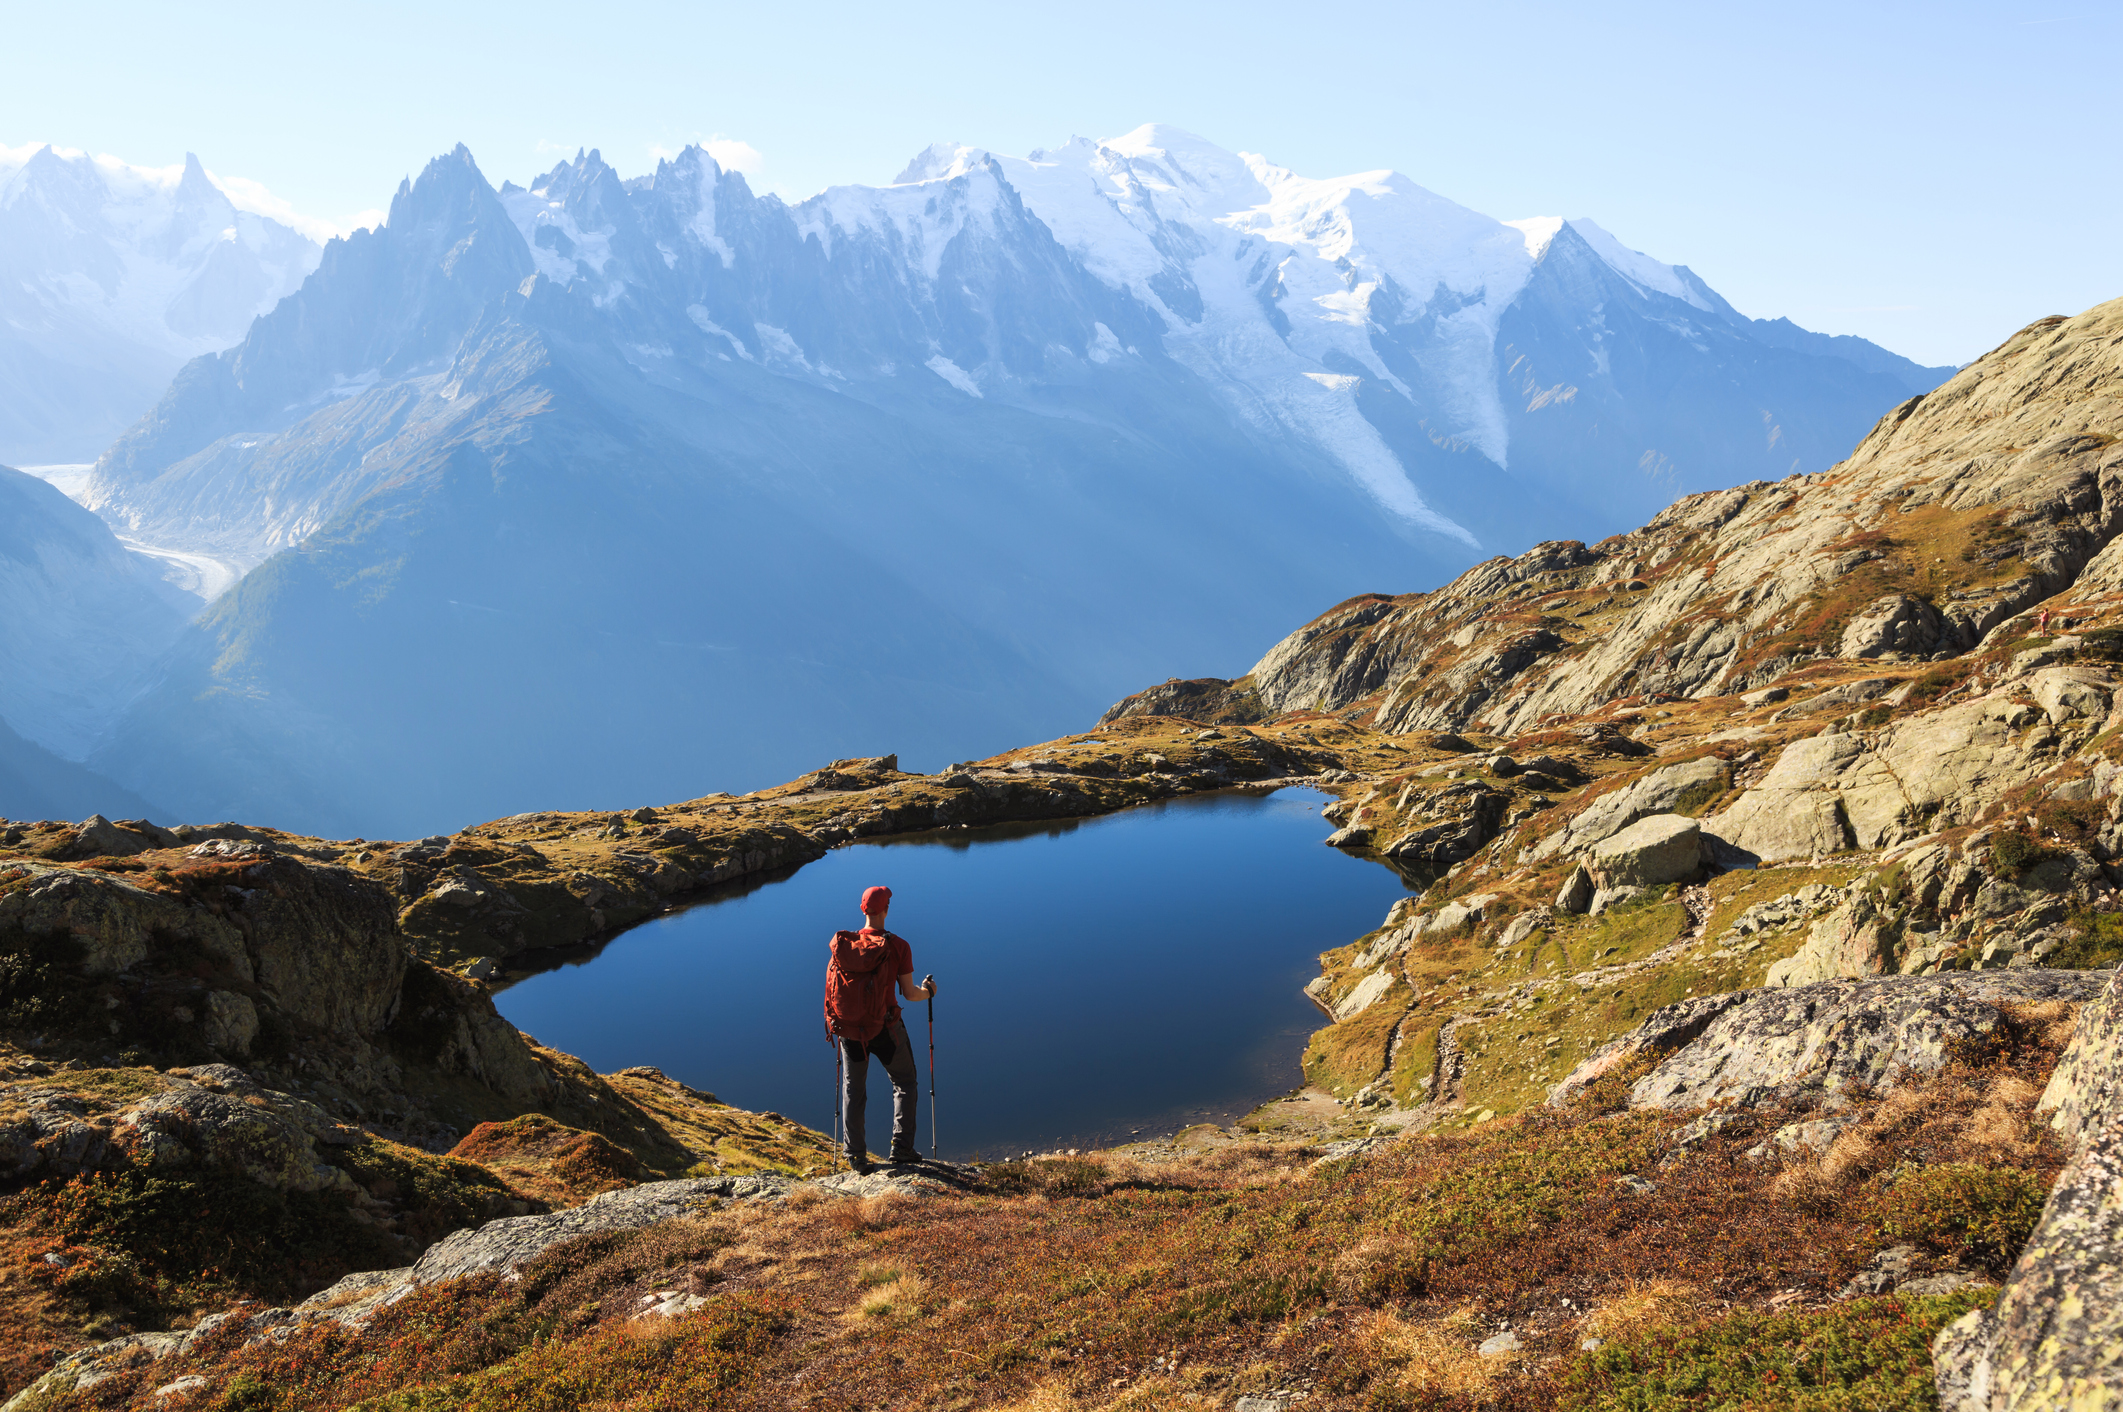 Lac des Cheserys : Just above the Grand Balcon Sud section of the main TMB trail and sharing a similar stunning view of the Mont Blanc massif. Hikers will pass this lake on the way to its more famous cousin, Lac Blanc.